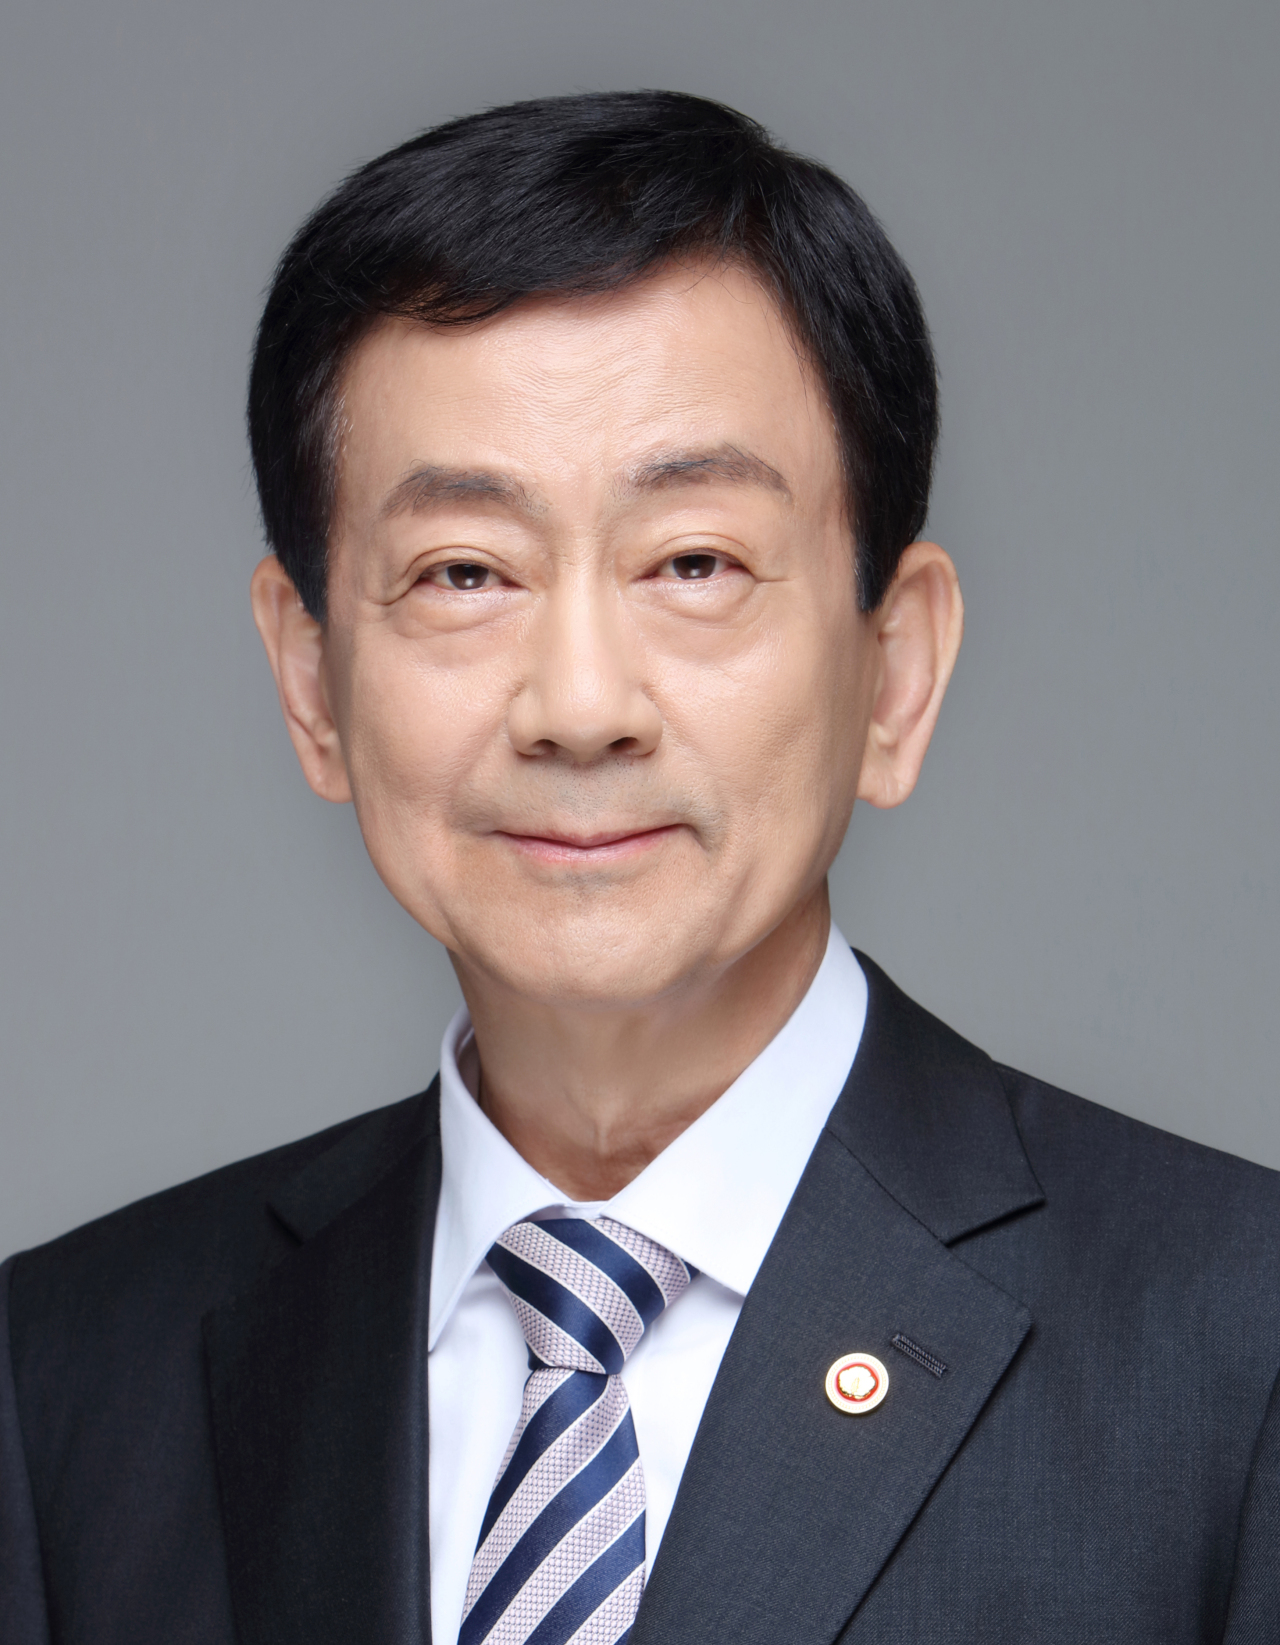 Interior Minister Chin Young (Ministry of Interior and Safety)